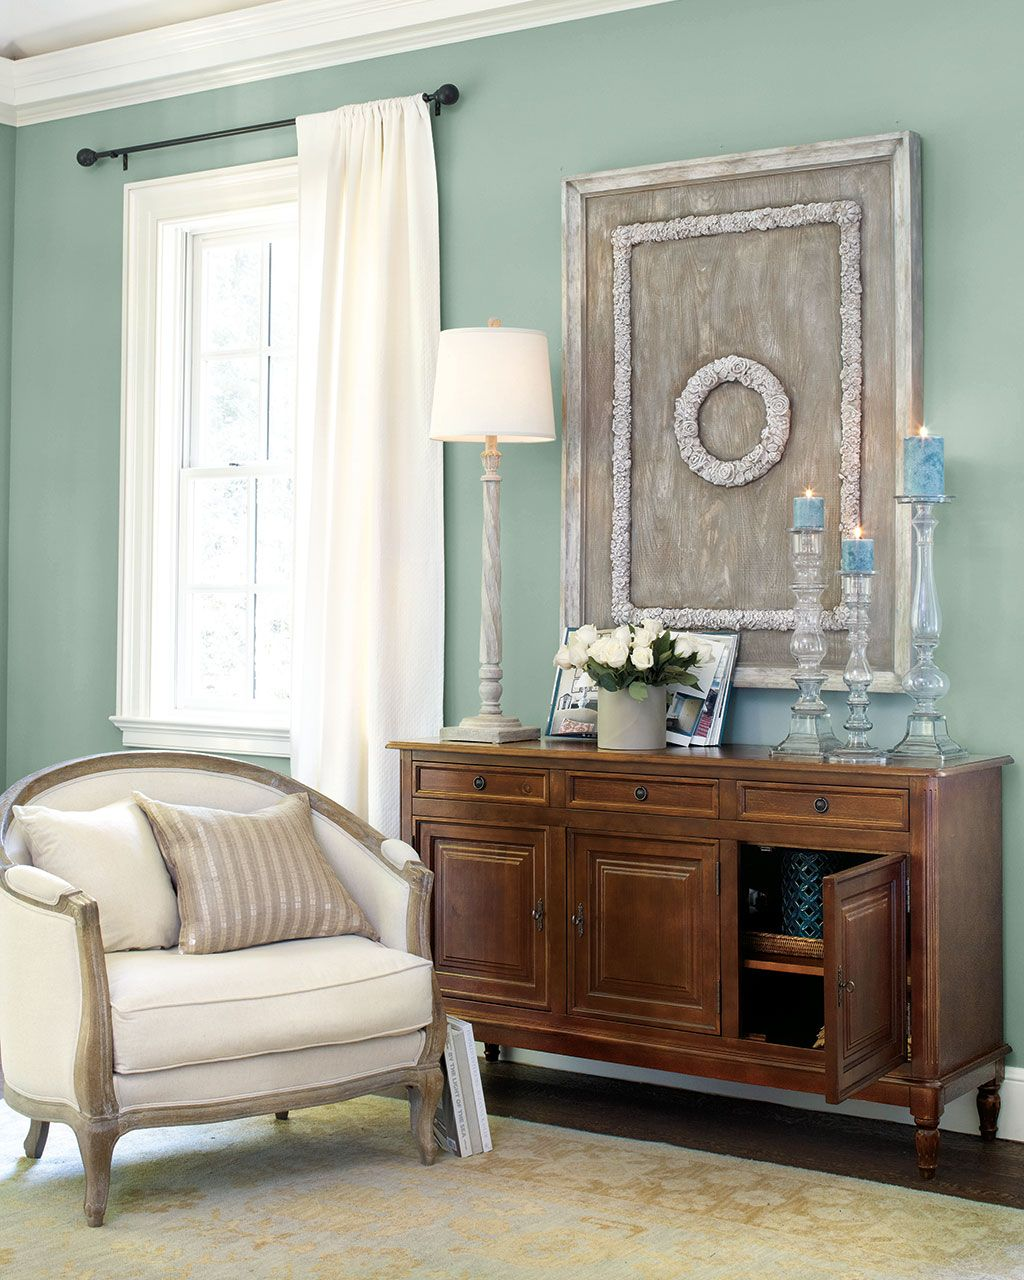 6 Tips for Mixing Wood Tones in a Room Wood furniture